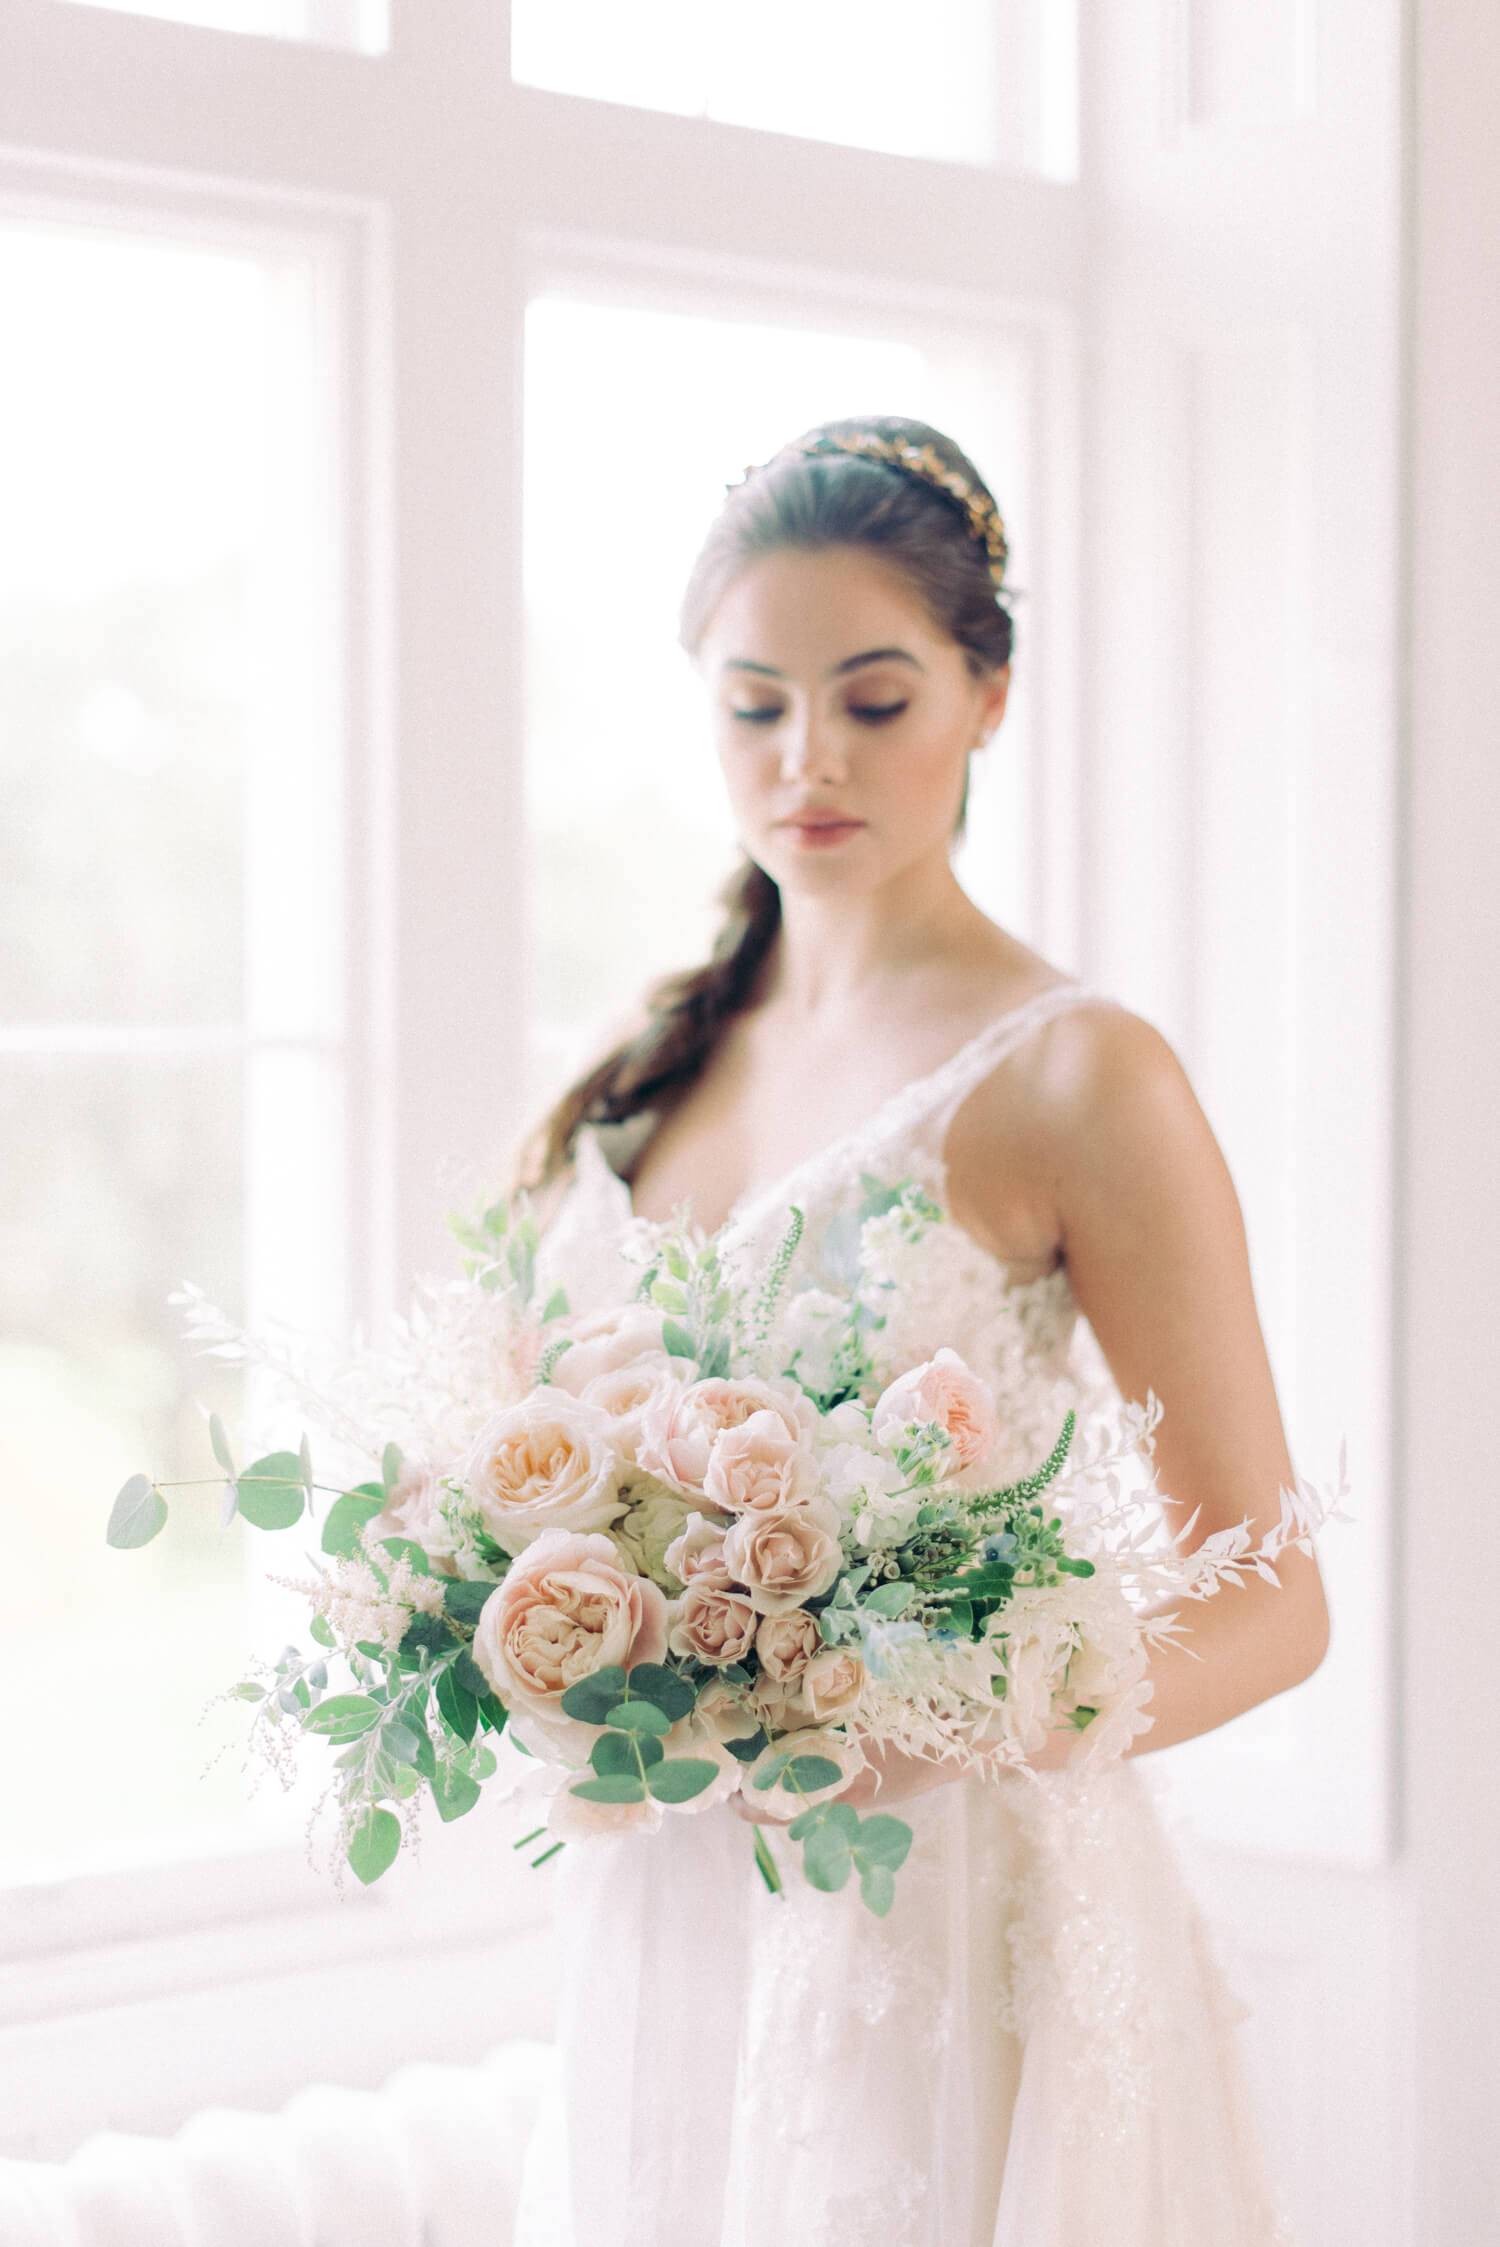 fairytale flowers with peach and blush blousy and spray roses and eucalyptus - bouquet by Flori & Fern - Thicket Priory wedding editorial by Filipina destination wedding photographer Cristina Ilao